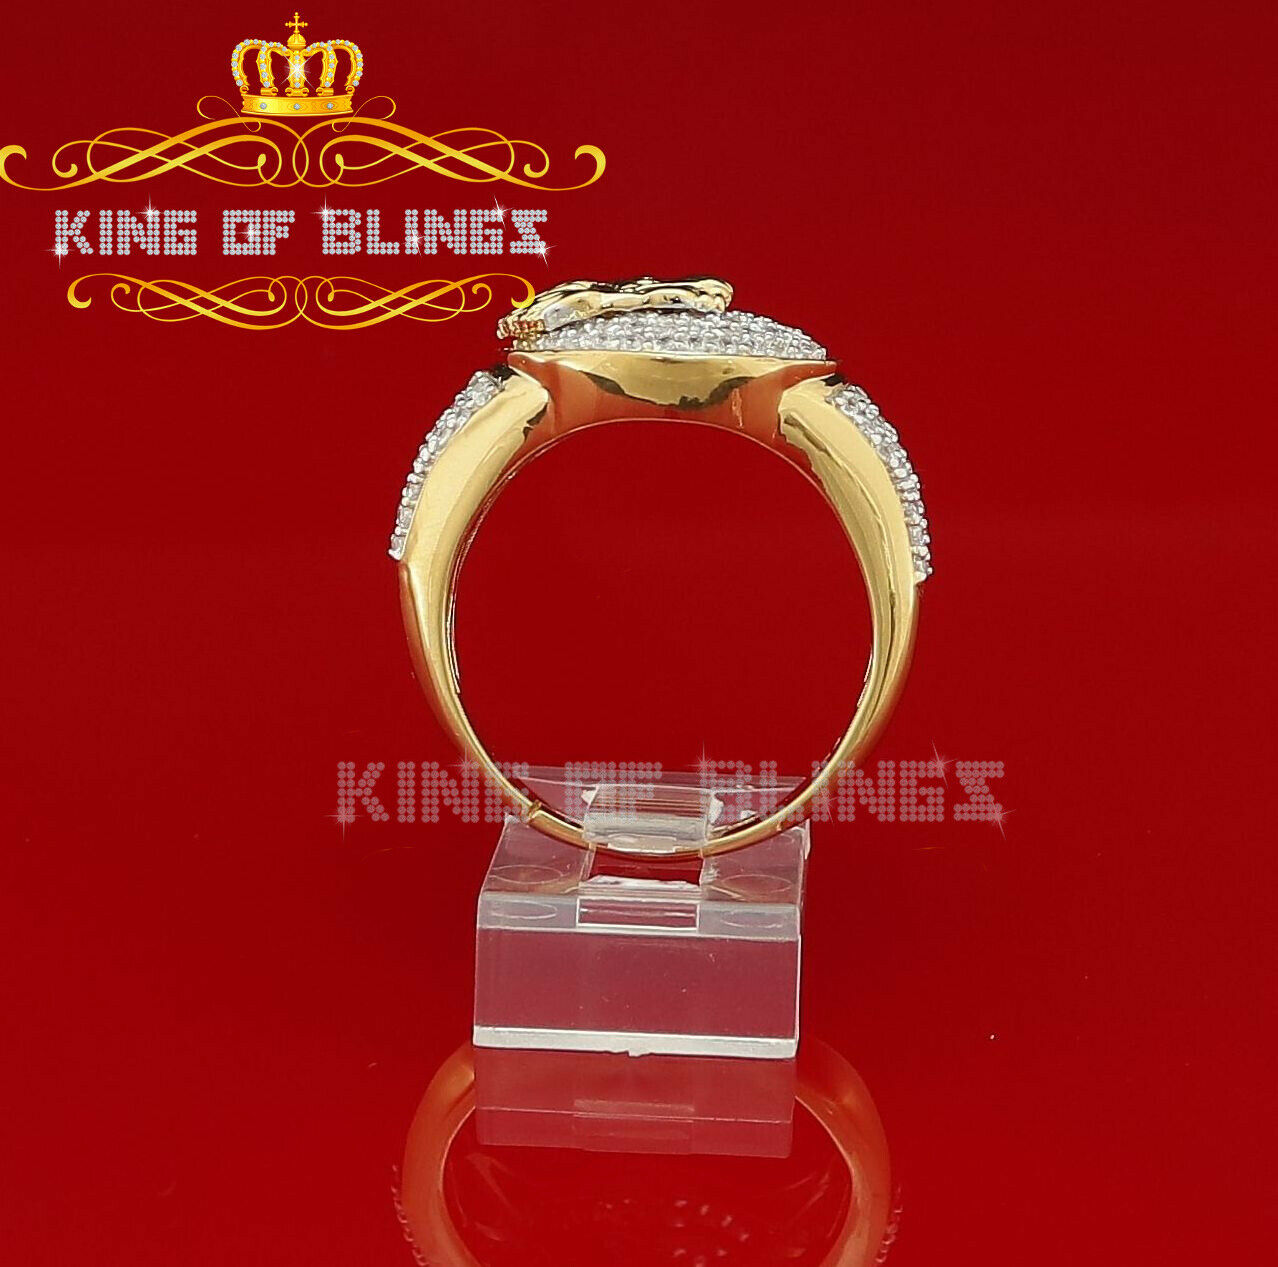 Sterling Silver and 10k Gold Mens Ring Size 11.5 US die Krone